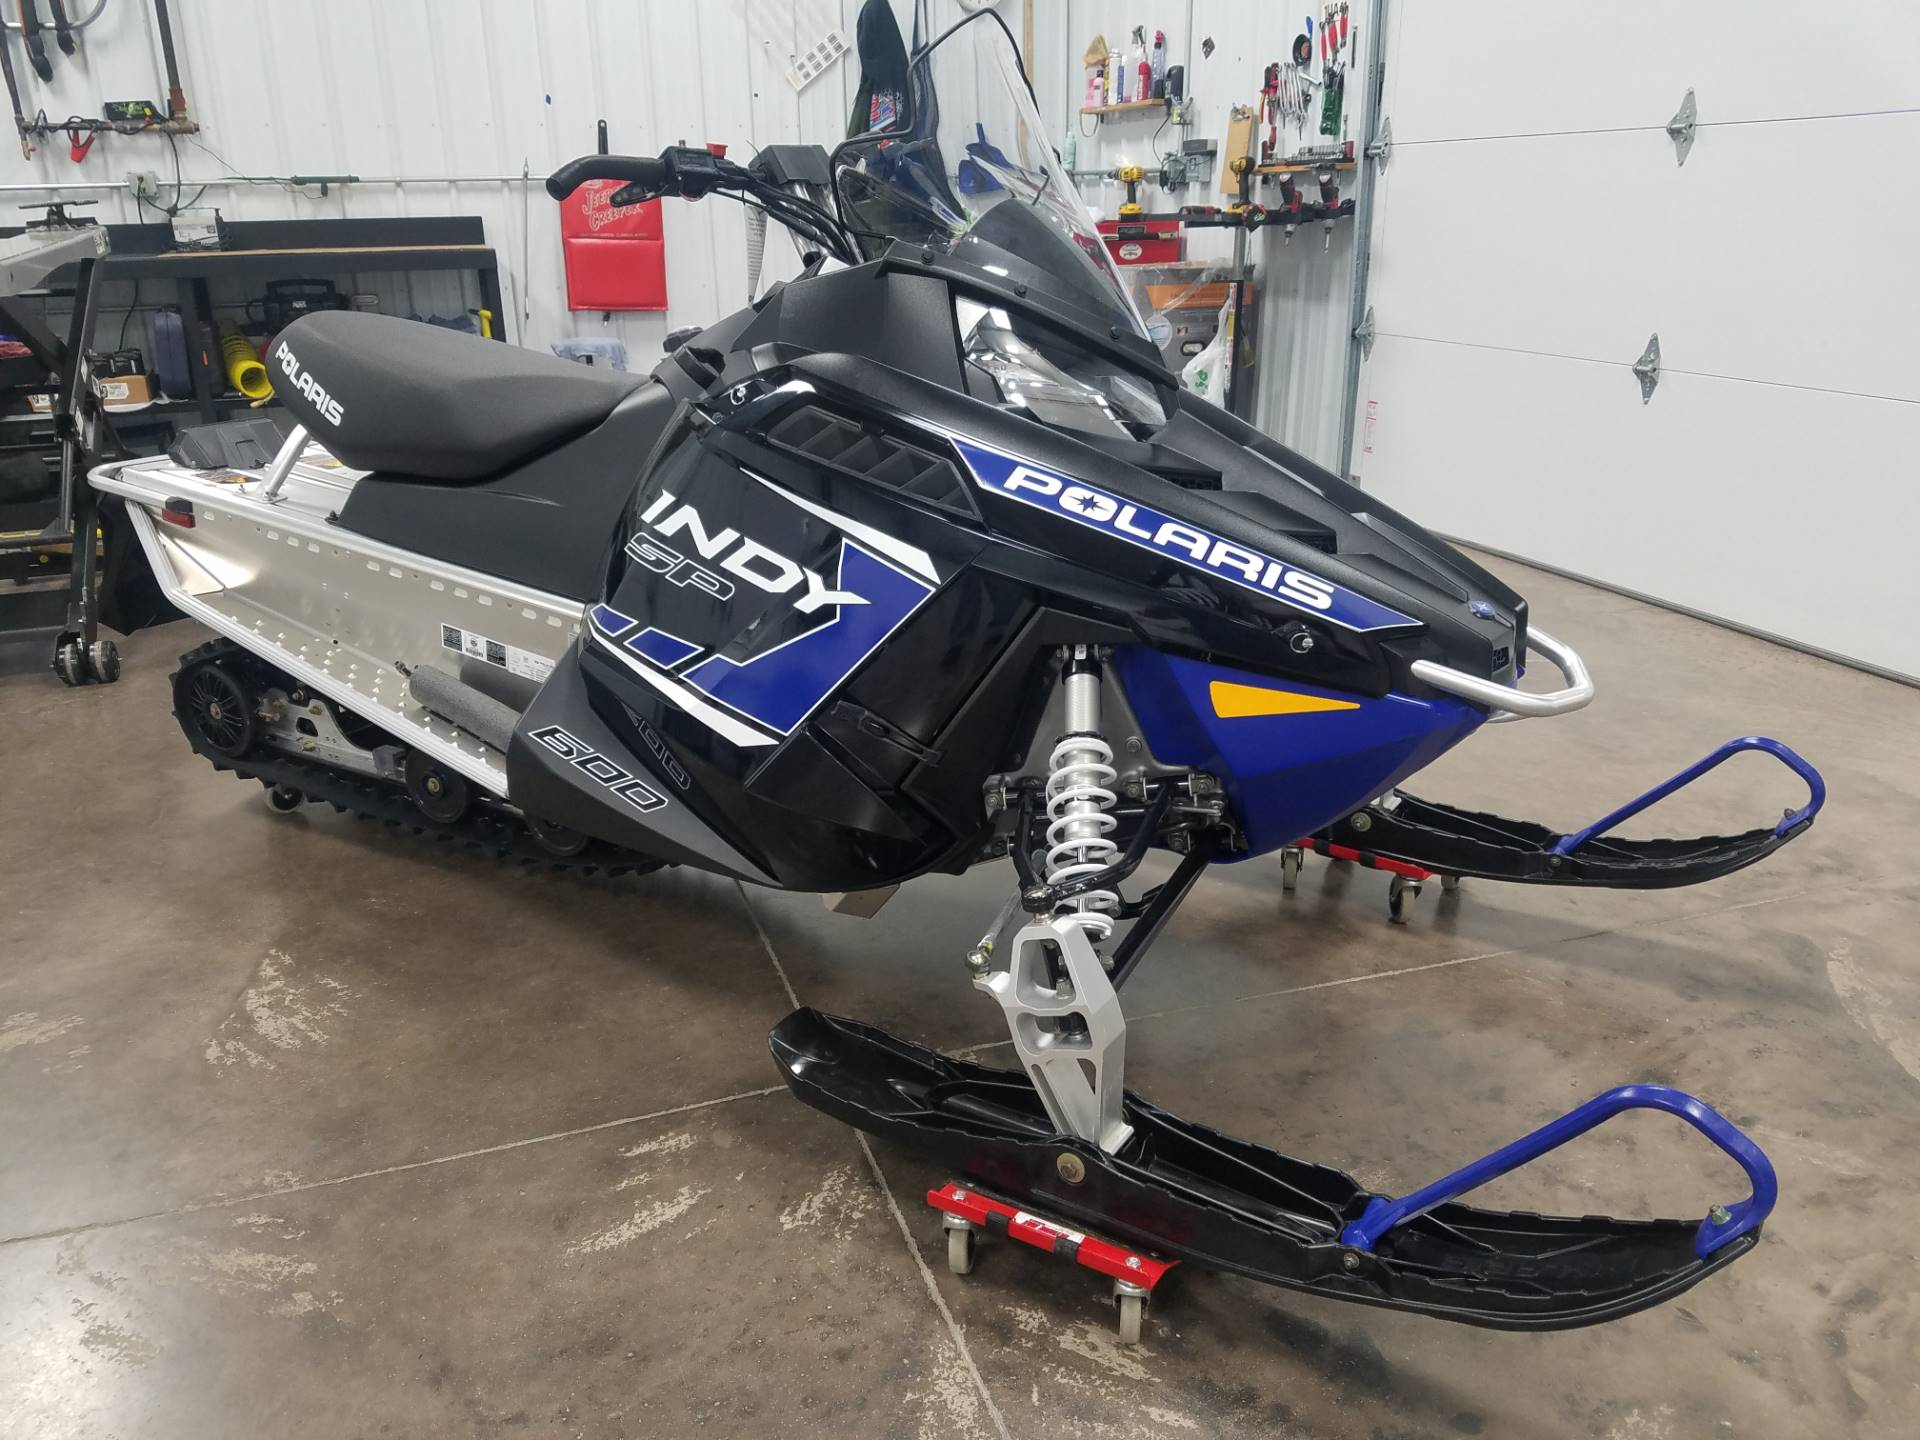 2018 Polaris 600 INDY SP ES in Algona, Iowa